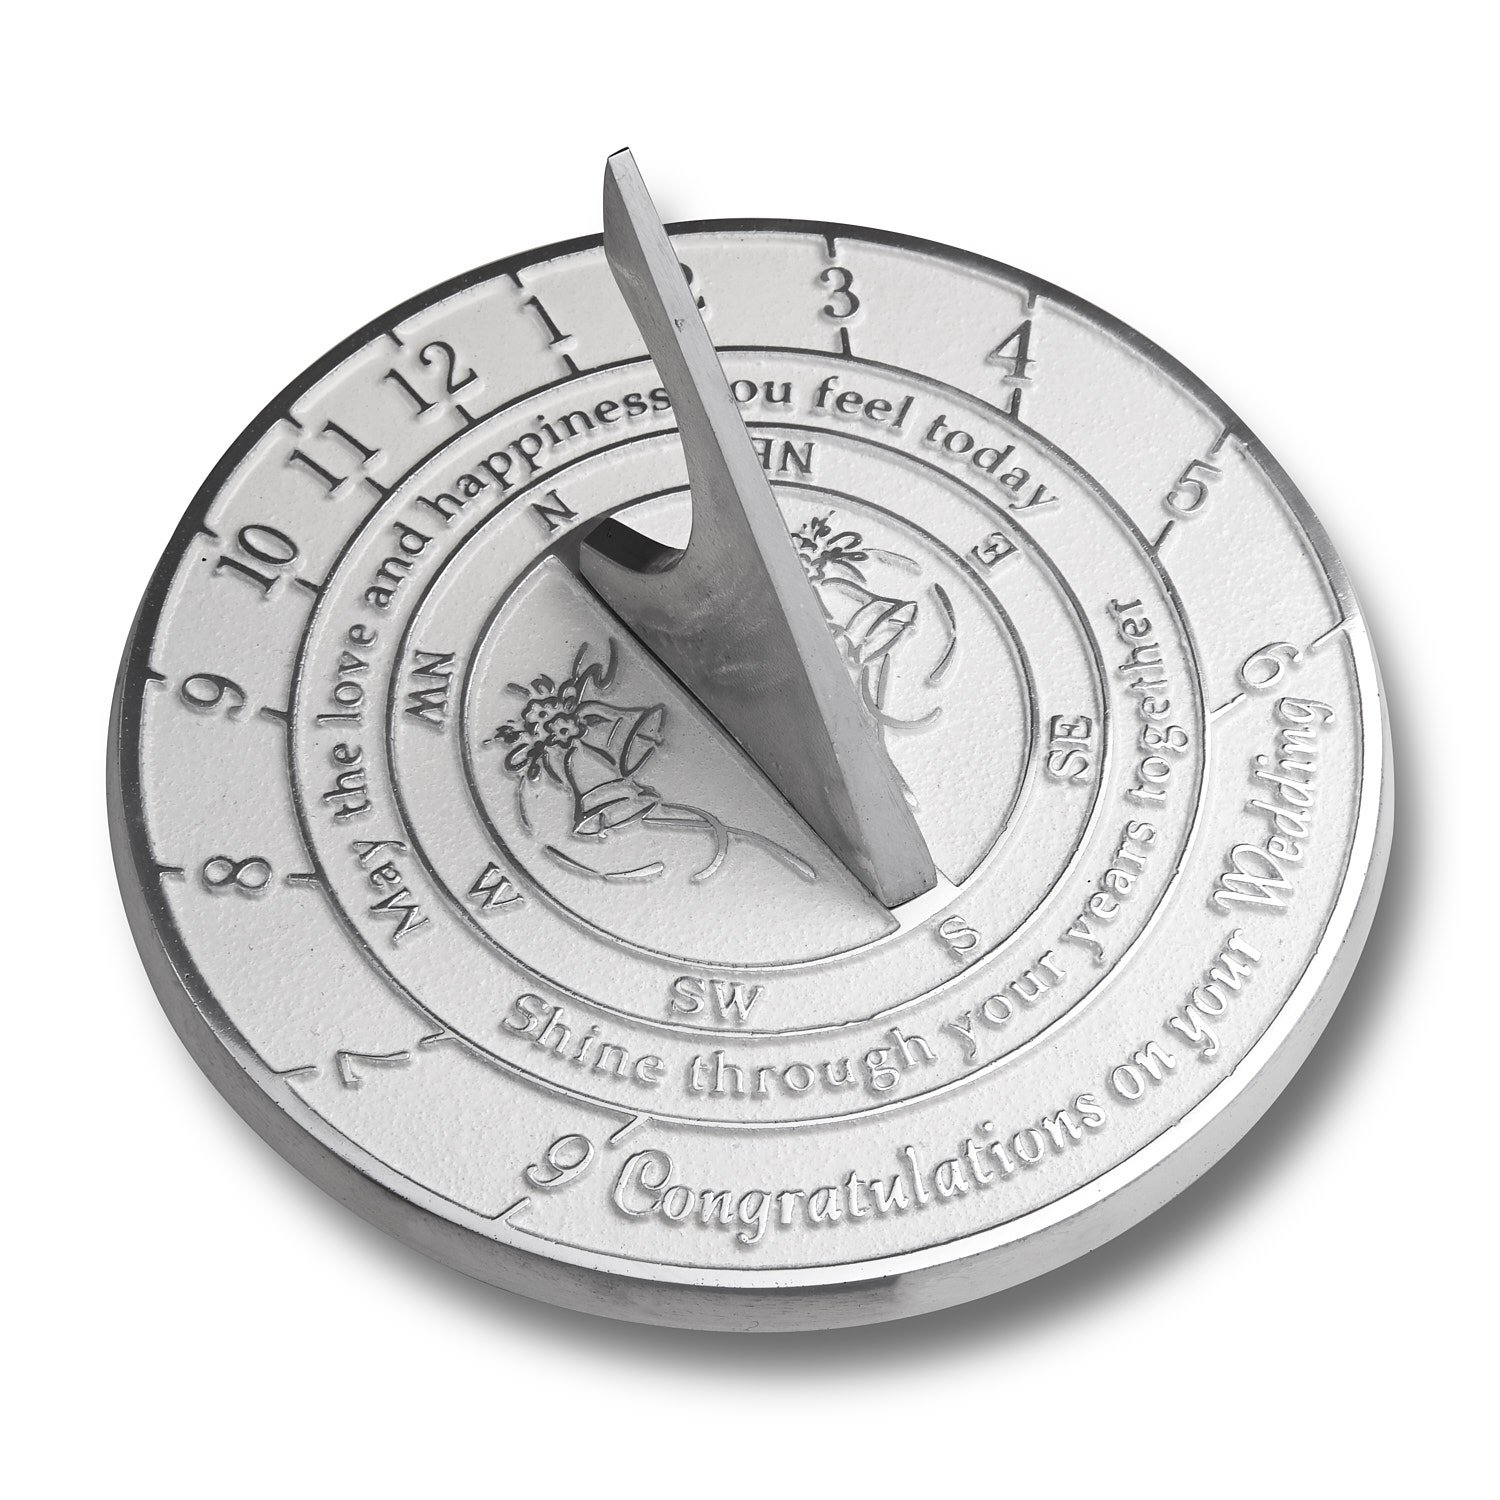 Unique Wedding Gift Idea For A Special Couple. A Years Together Sundial Makes A Great Marriage Present For The Bride And Grooms Garden Or Home Décor Ornament. By The Metal Foundry UK